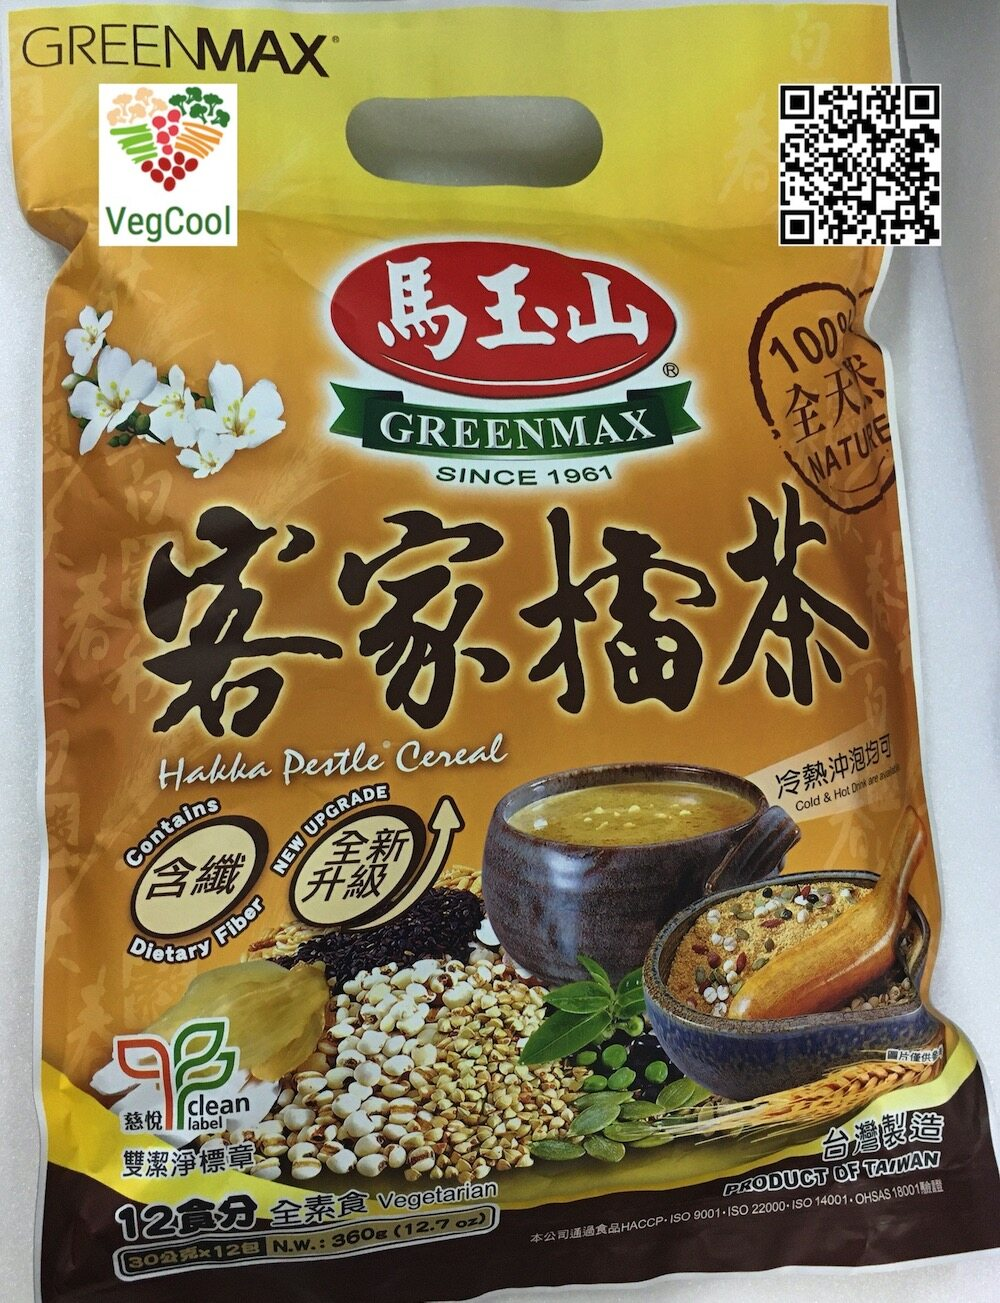 Greenmax 100% Natural Hakka Pestle Cereal (30g x 12 sachets)